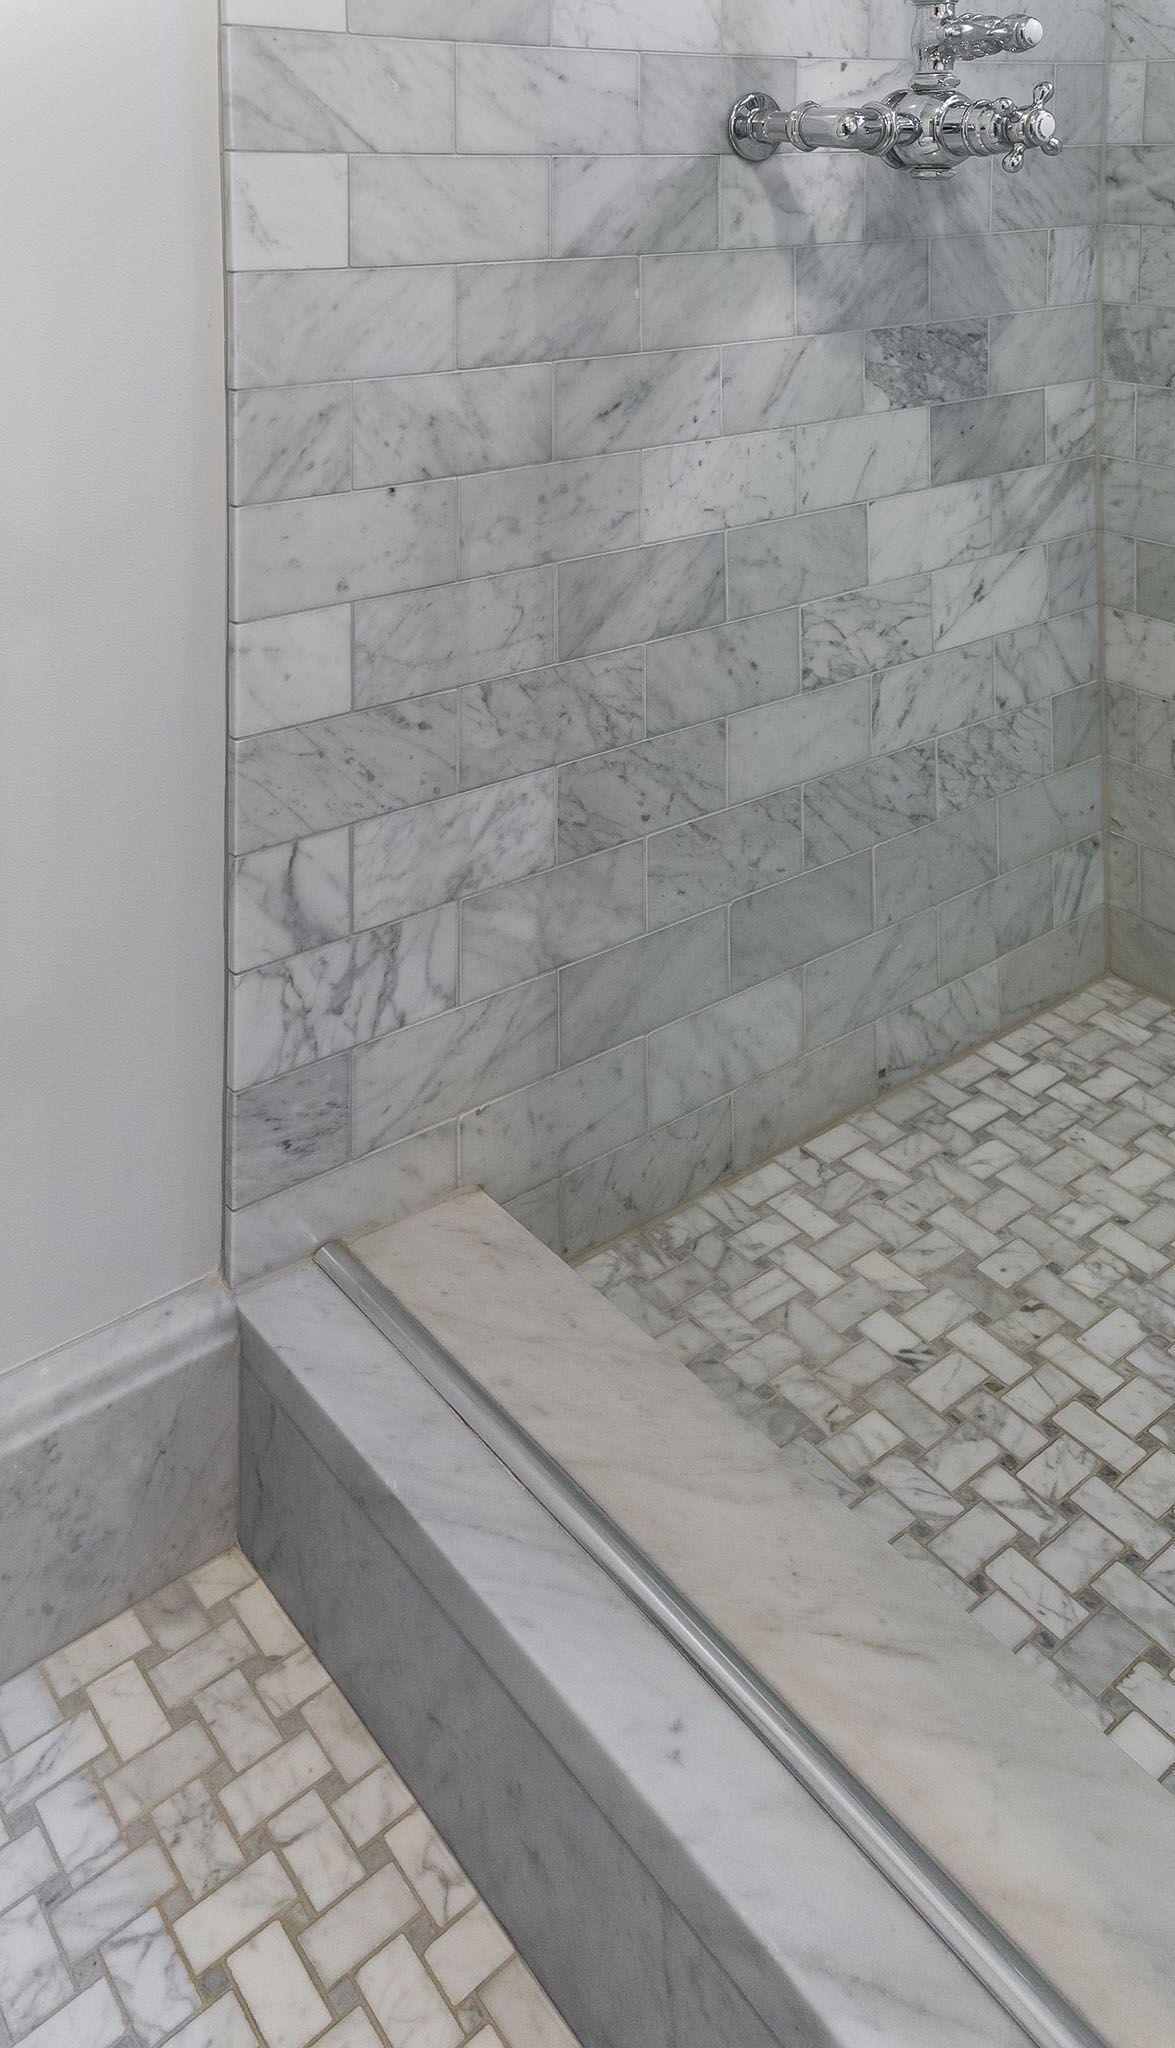 Guest Bathroom With Grey Subway Tile Shower Walls And Basket Weave Tile Floor Mosaic Tile Bathroom Floor White Mosaic Bathroom Bathroom Floor Tiles